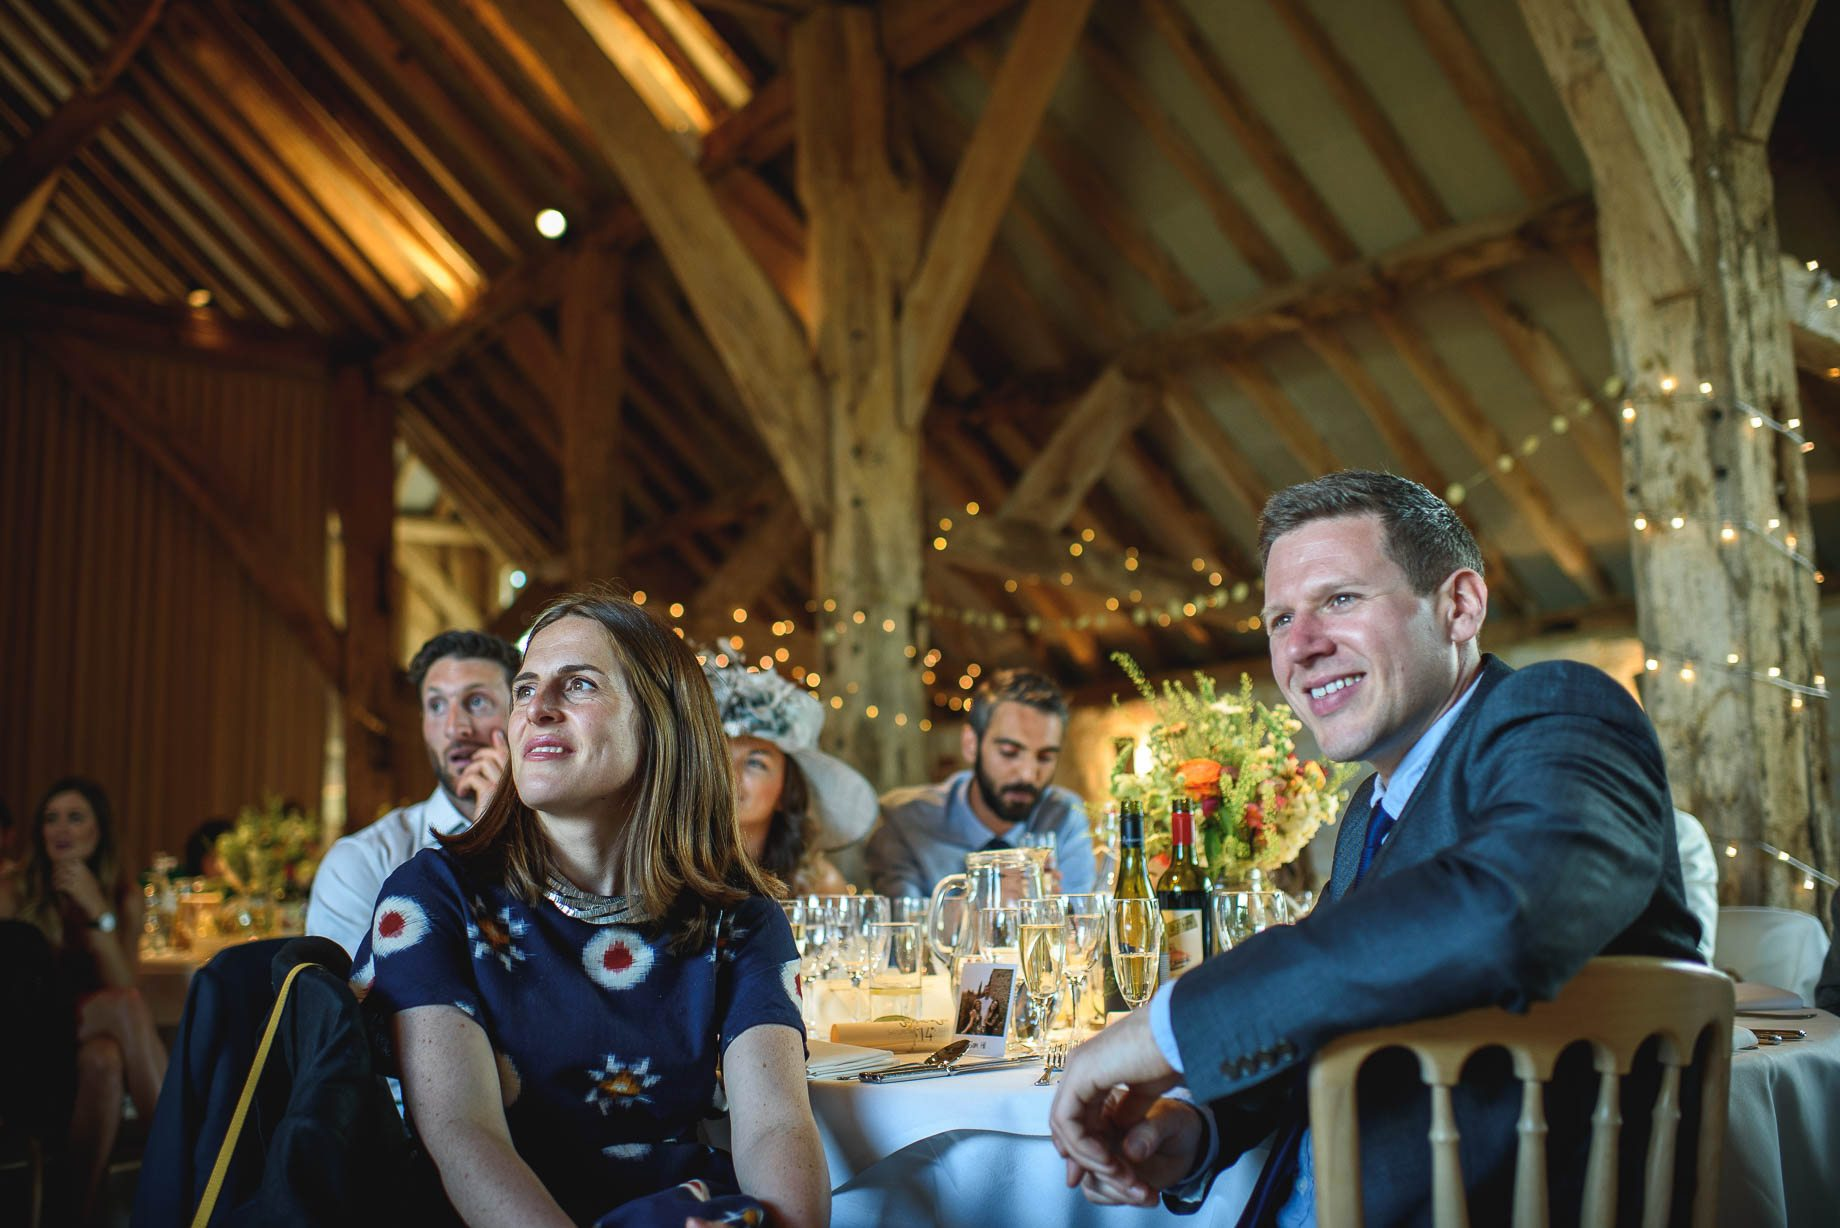 Bury Court Barn wedding photography by Guy Collier - Jo and Jamie (112 of 160)